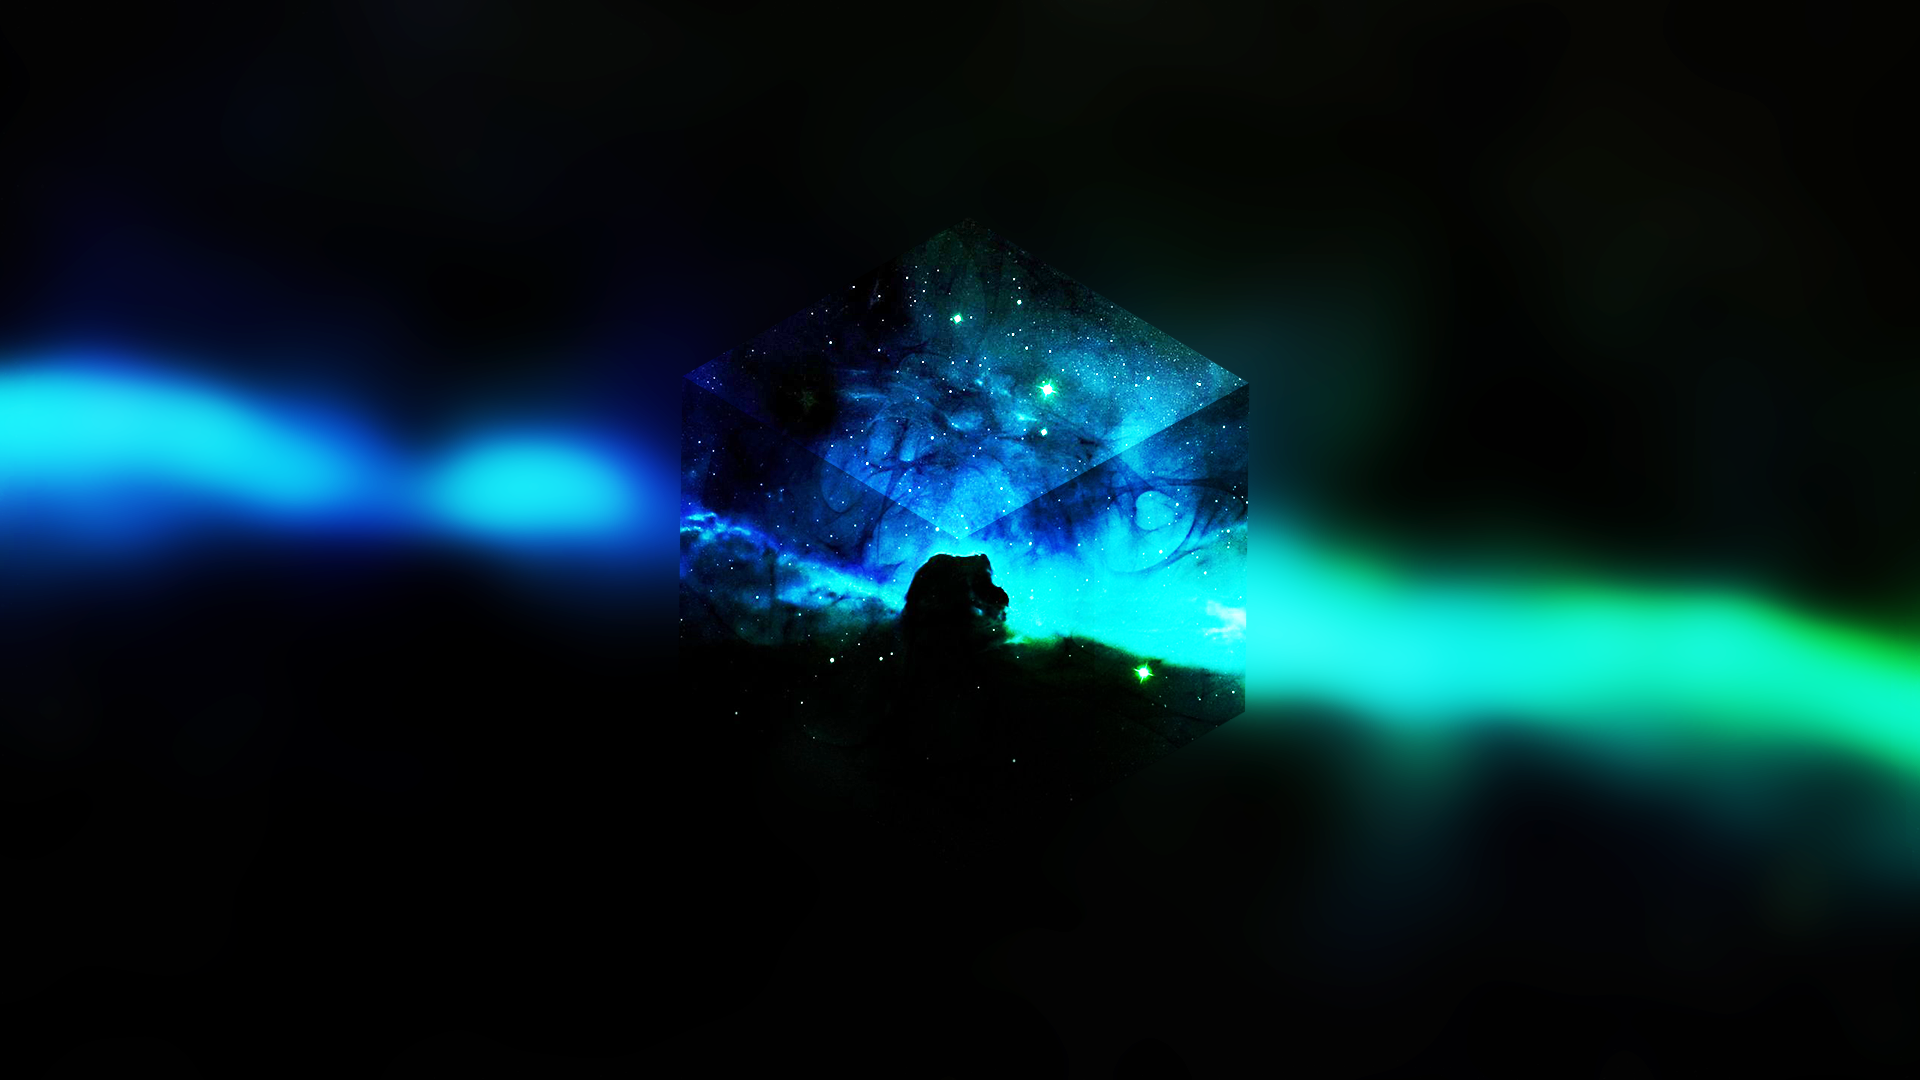 General 1920x1080 space blue abstract minimalism cube QuantomStarBox (Deviant Art) edit